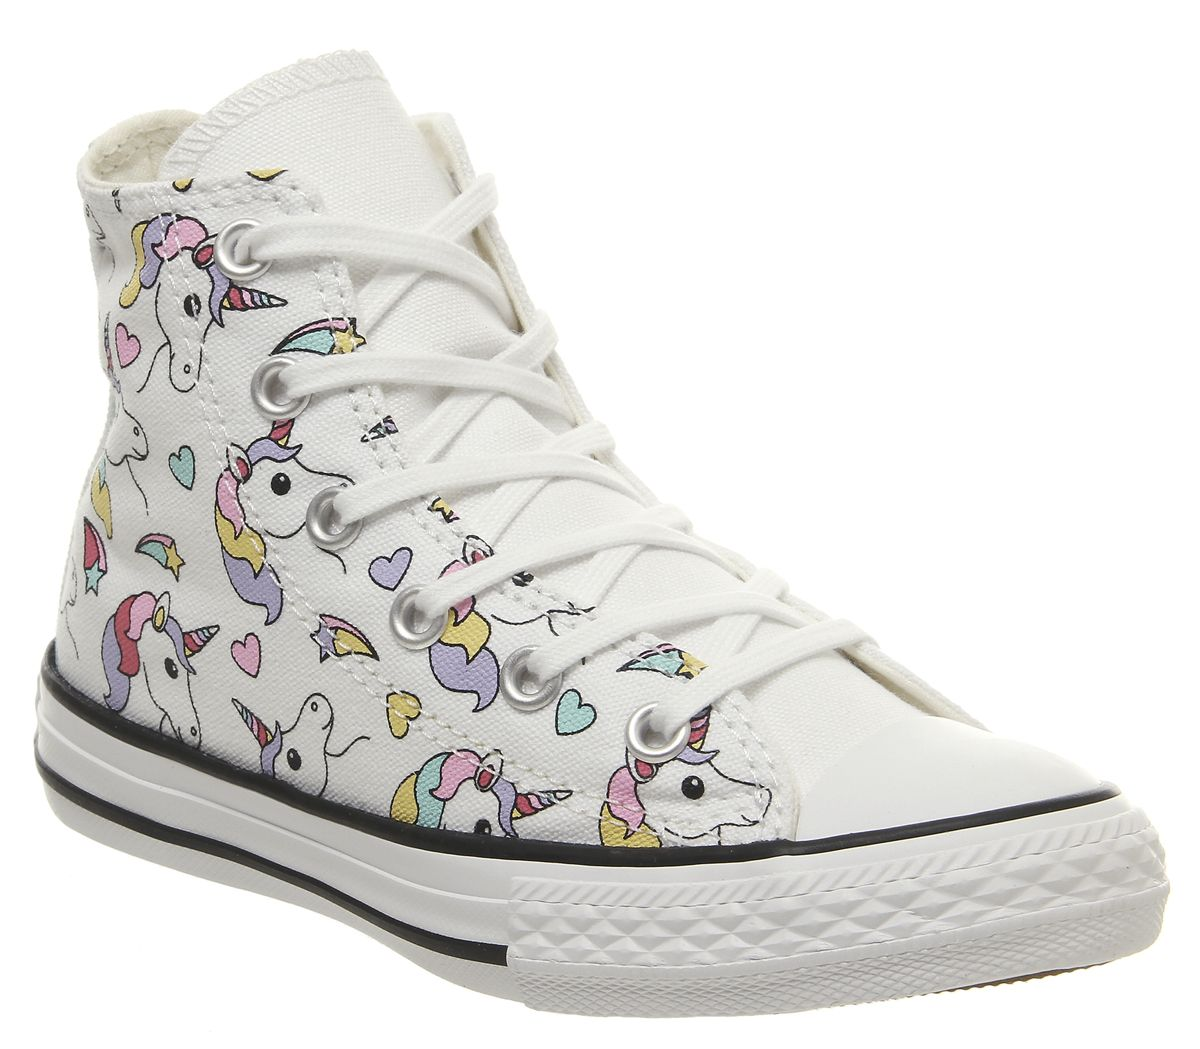 the best attitude 28685 15dfb Converse All Star Hi Mid Sizes Trainers Unicorn Rainbow - Unisex